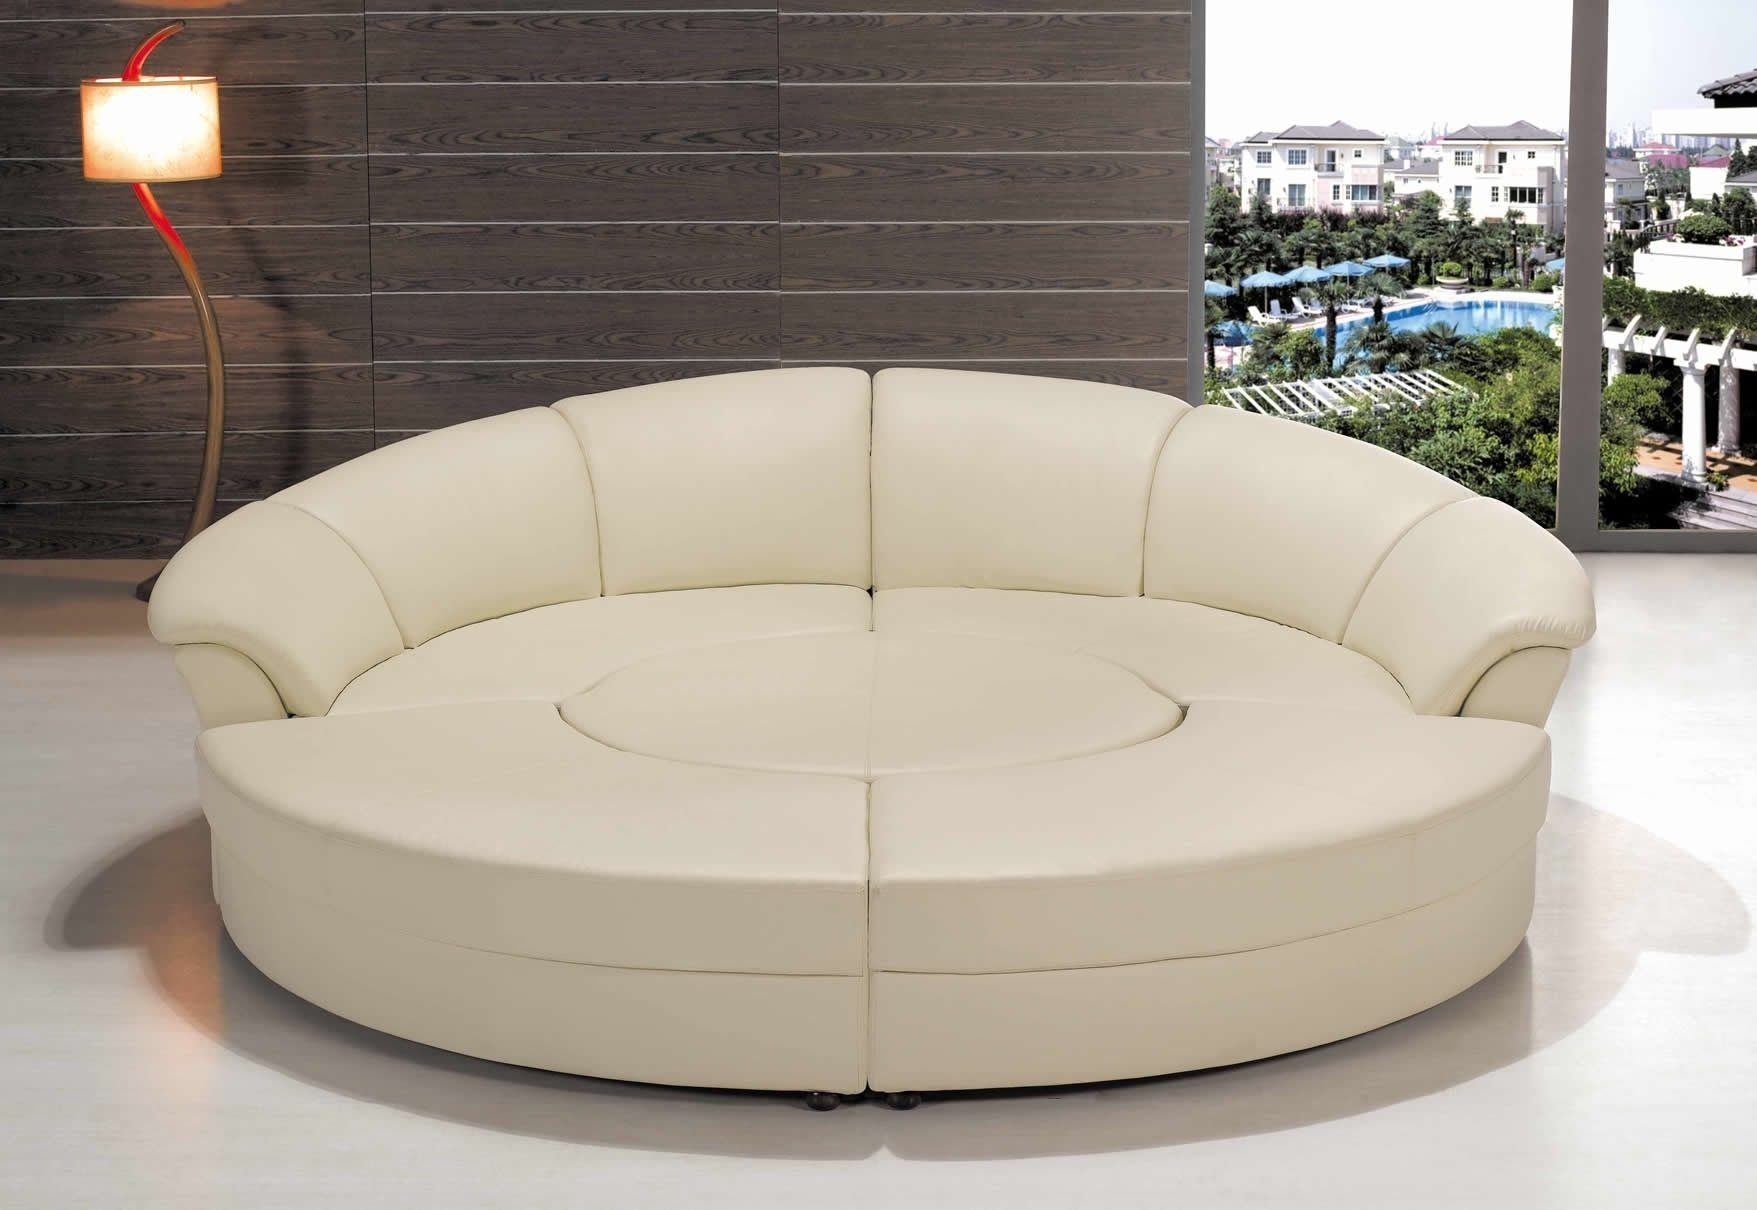 Semi Circular Sectional Sofa 2 – Semi Circular Sofa Uk, Sofa | Stuff Throughout Semicircular Sofas (View 7 of 10)